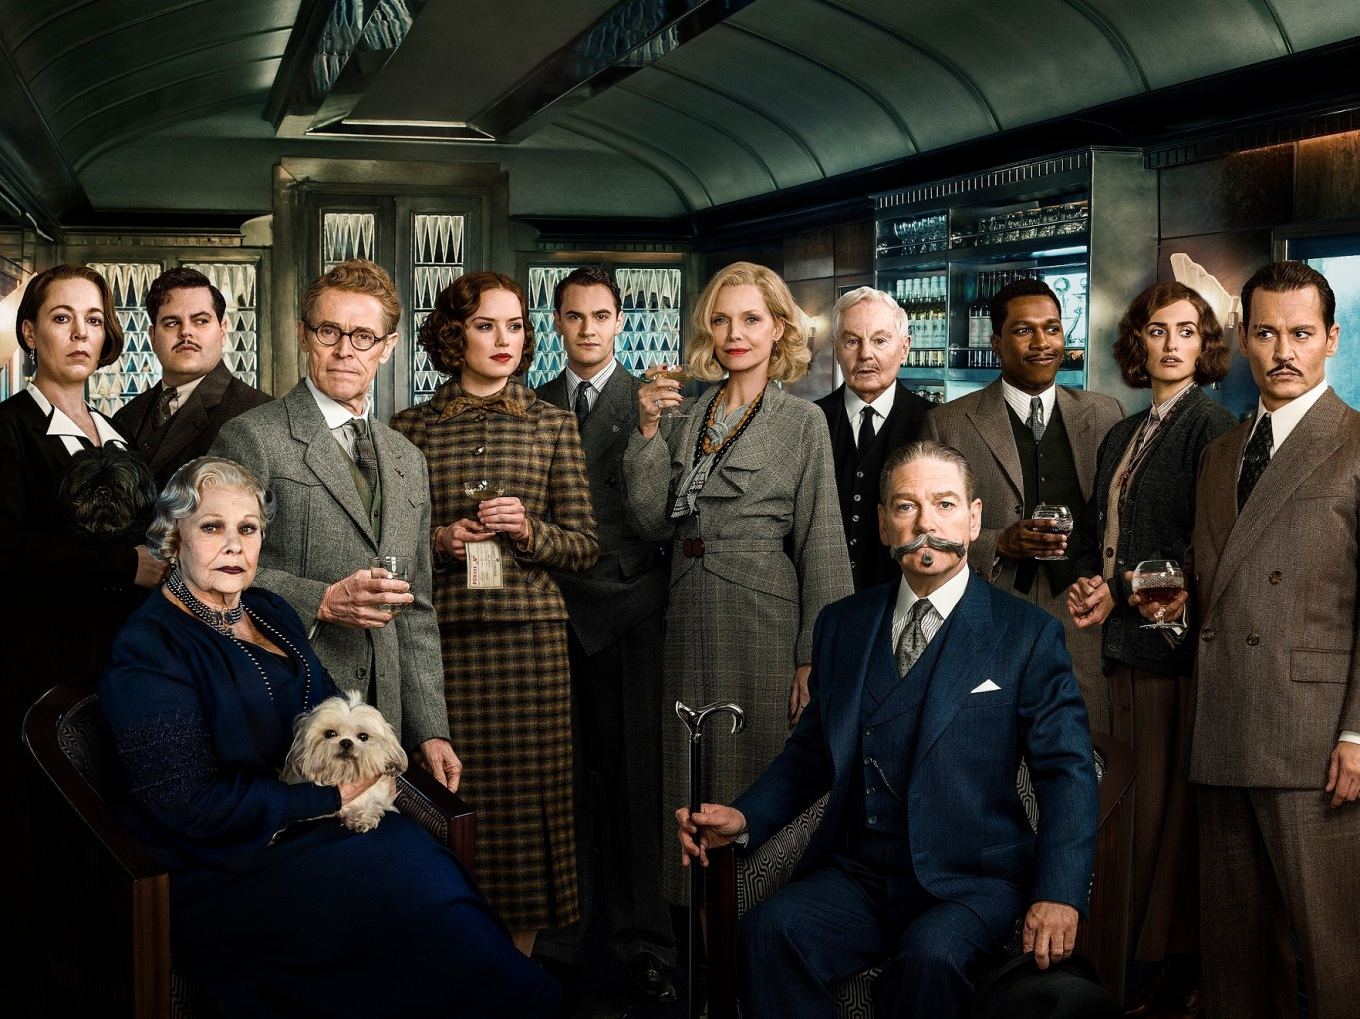 Murder_On_The_Orient_Express_cast photo